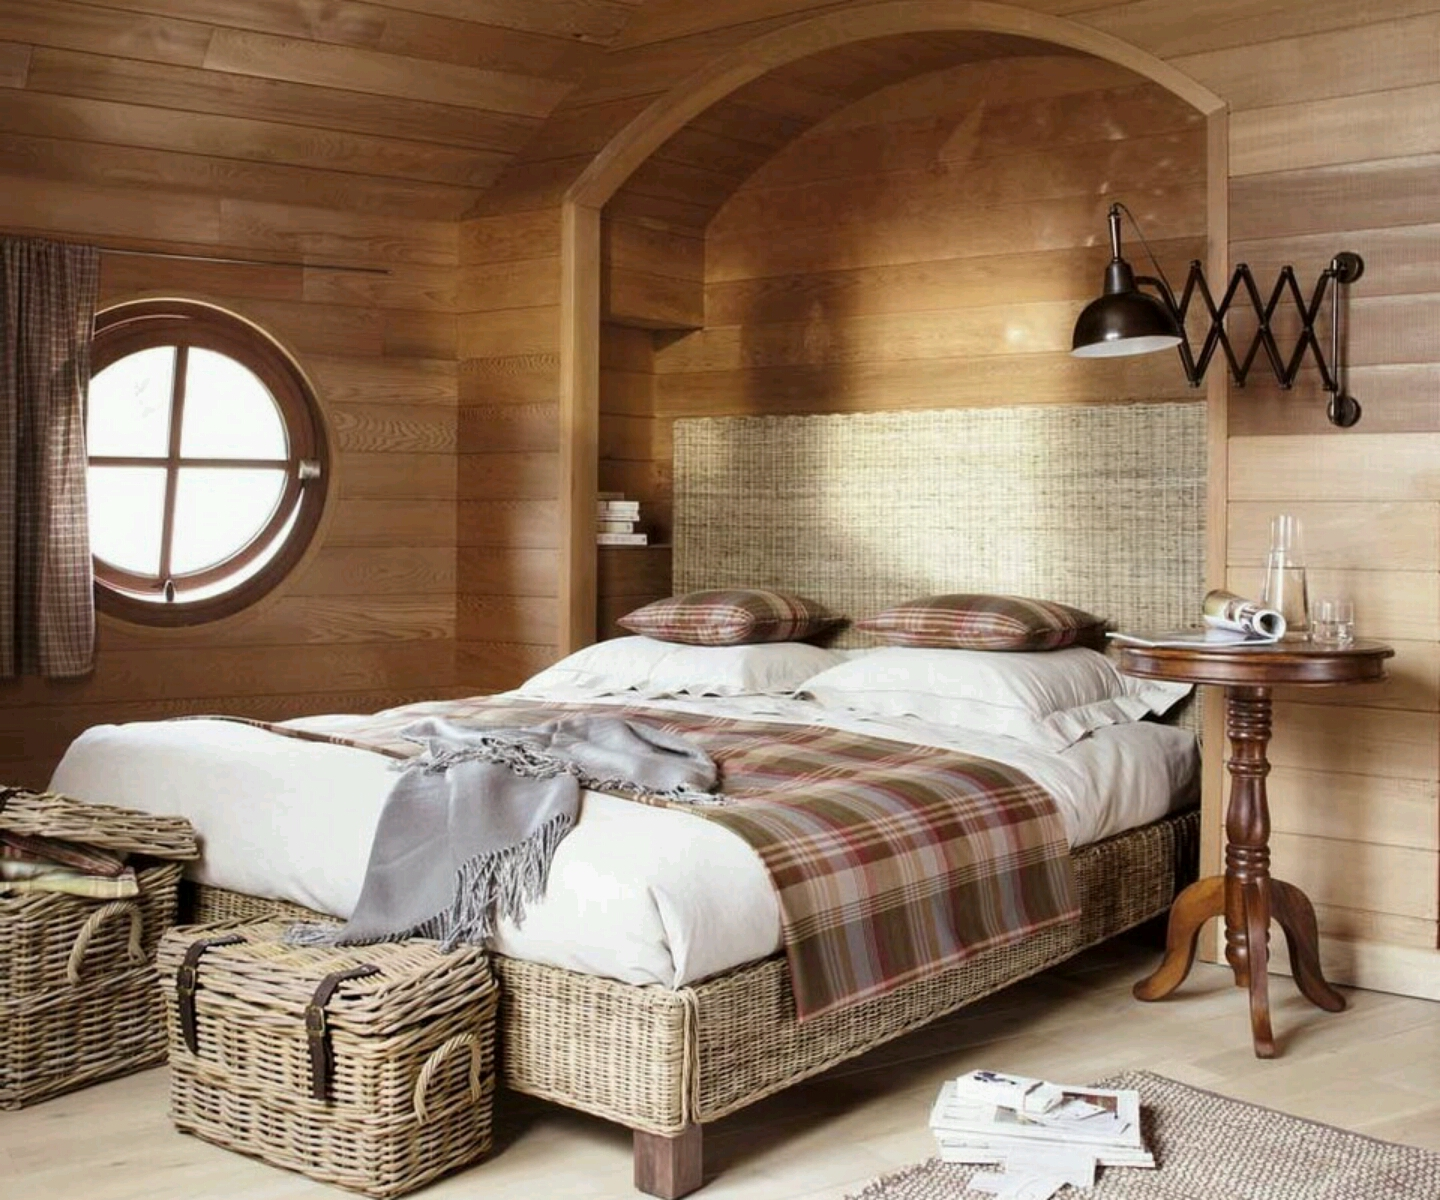 Beautiful bedroom interior designs photos for Bedroom photos